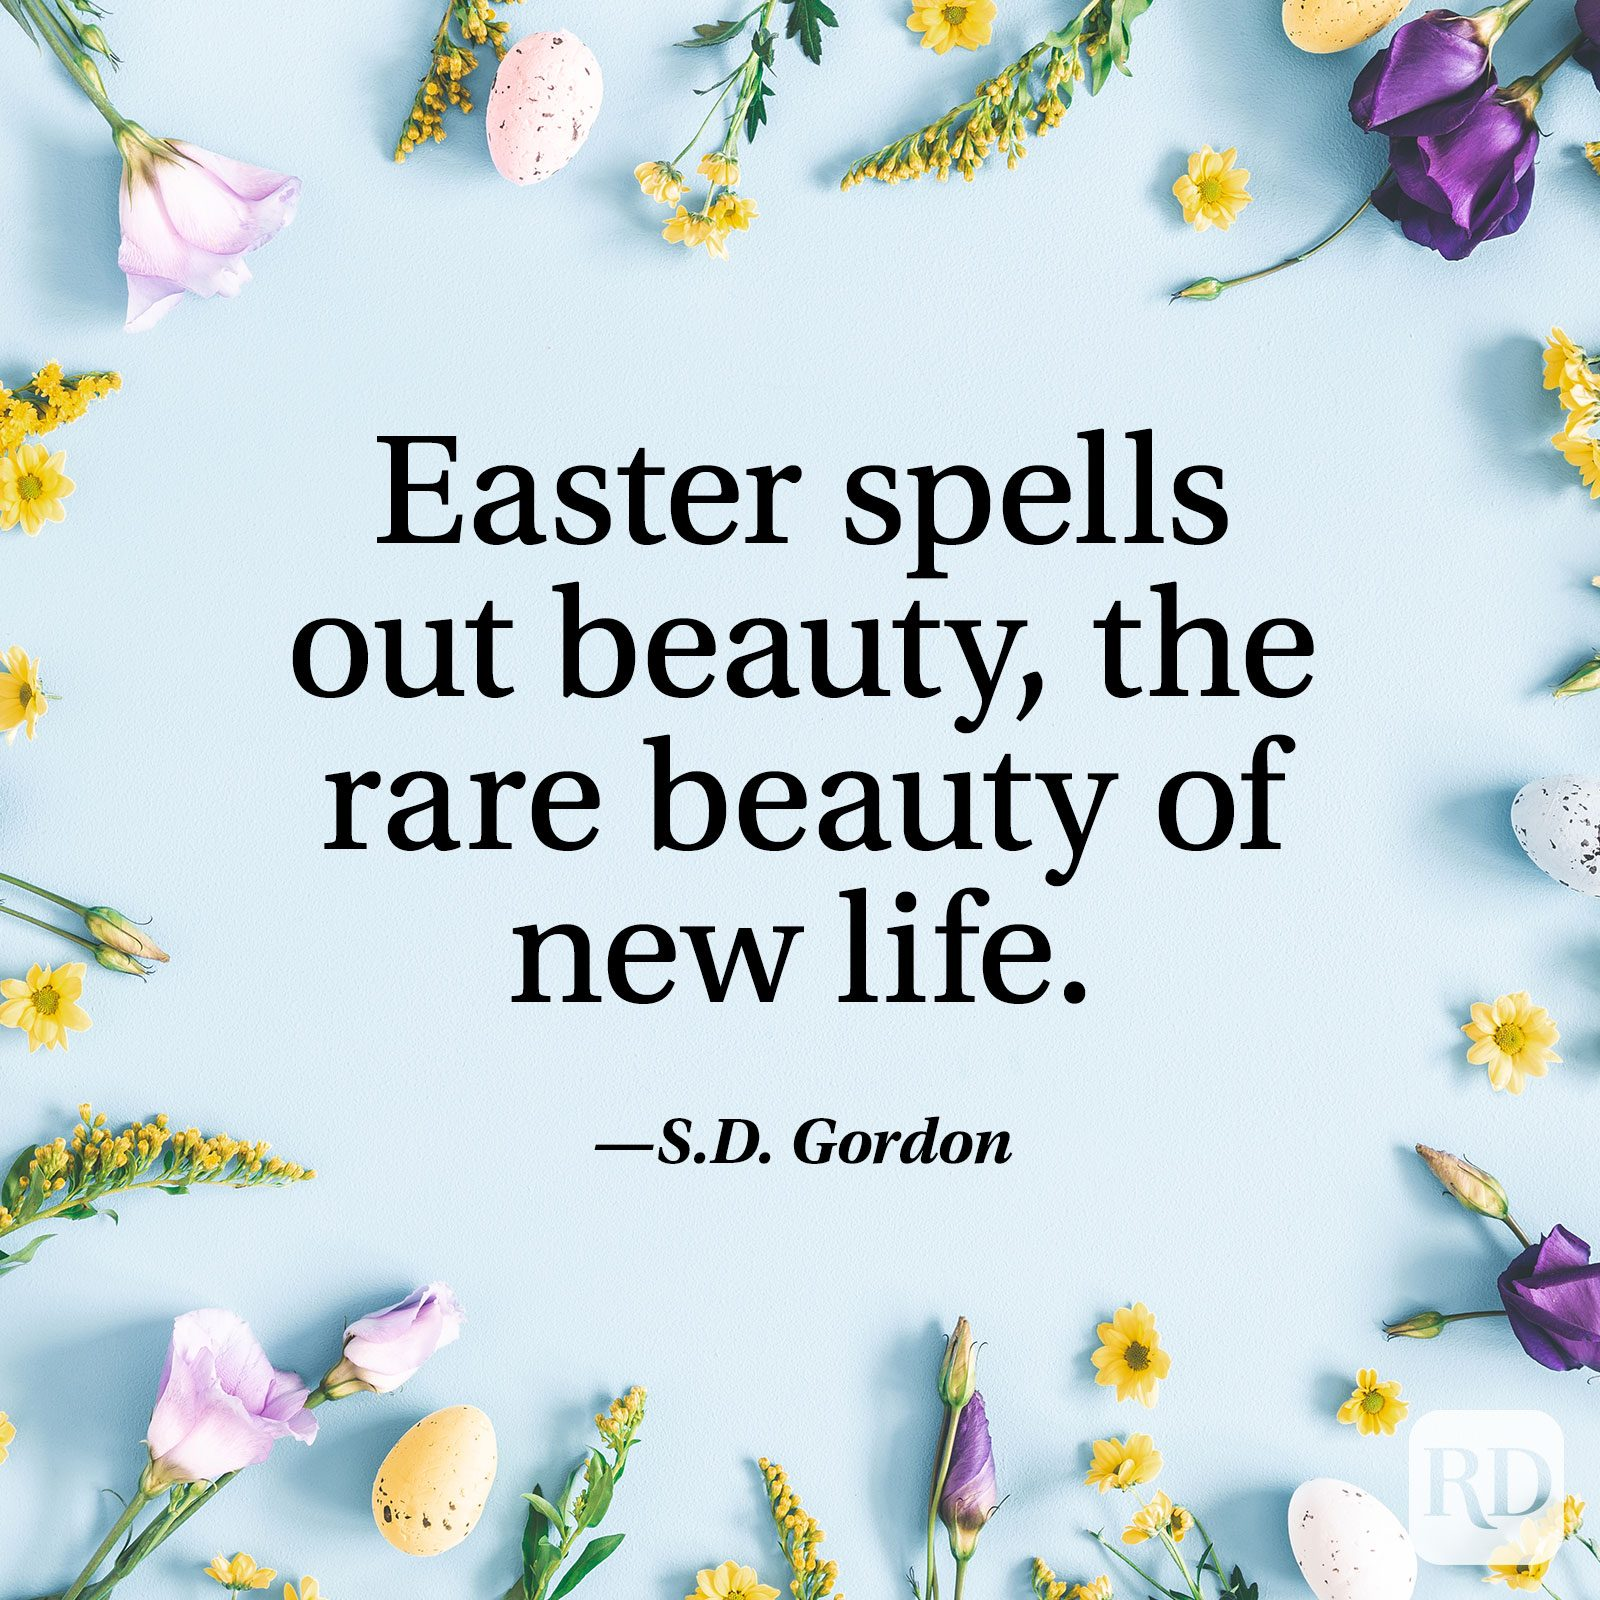 """Easter spells out beauty, the rare beauty of new life."" — S.D. Gordon"